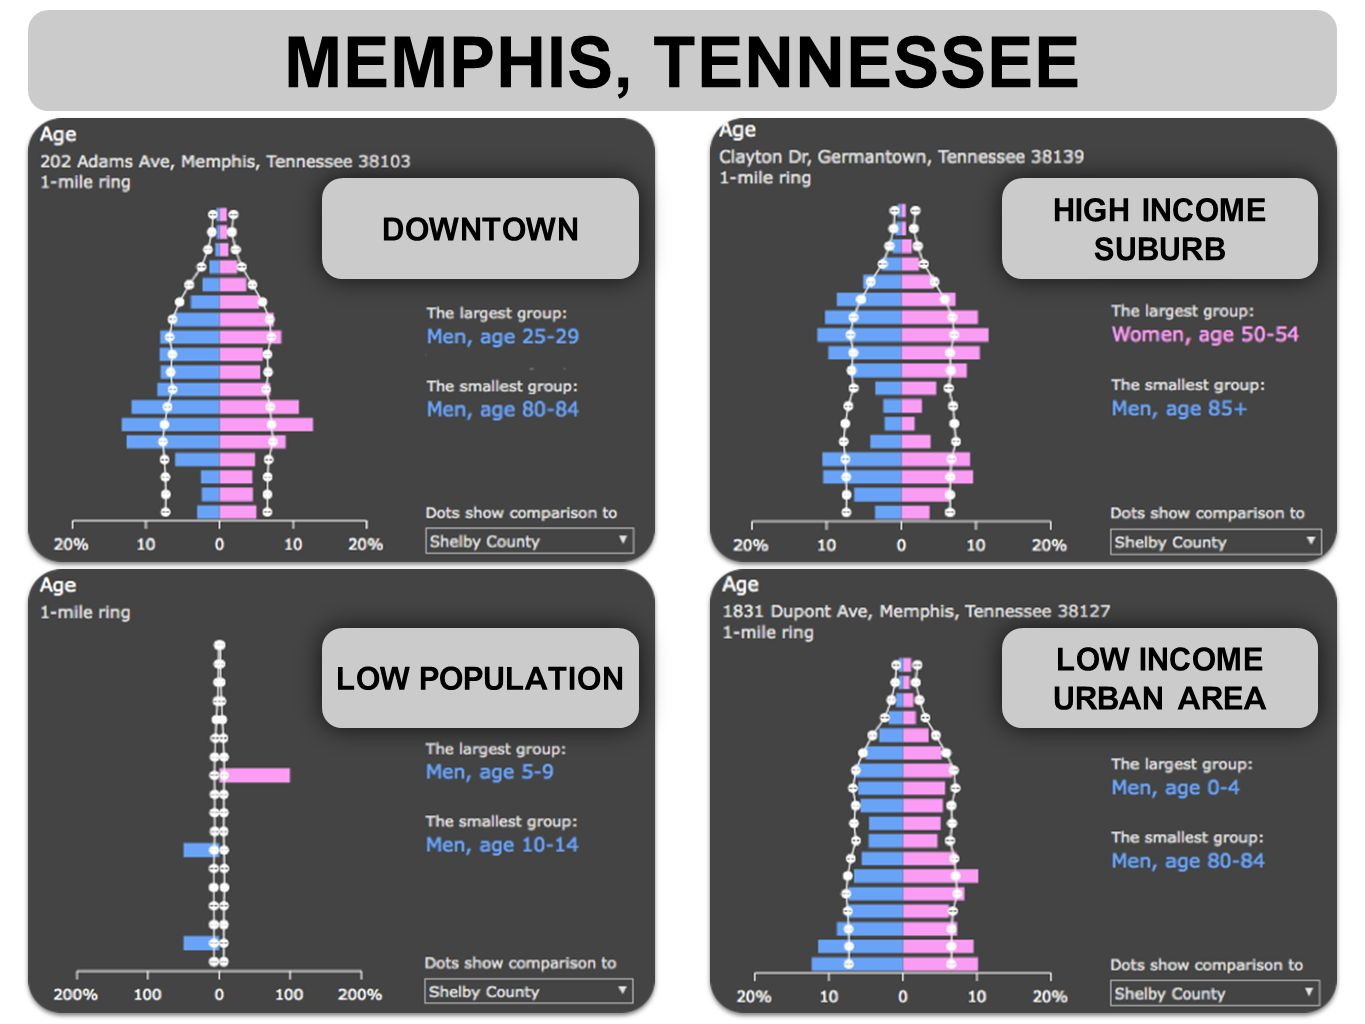 MEMPHIS, TENNESSEE DOWNTOWN HIGH INCOME SUBURB LOW INCOME URBAN AREA LOW POPULATION